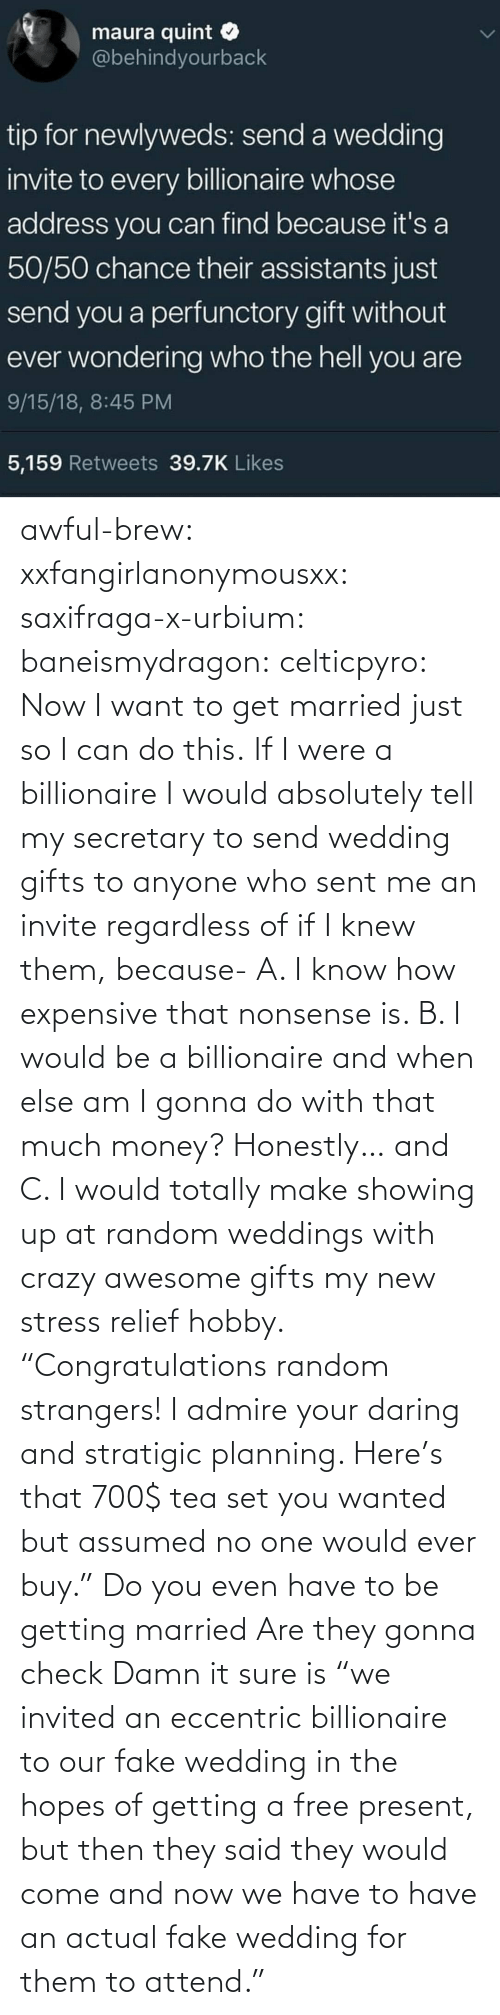 "I Knew: awful-brew:  xxfangirlanonymousxx:  saxifraga-x-urbium:  baneismydragon:  celticpyro: Now I want to get married just so I can do this.  If I were a billionaire I would absolutely tell my secretary to send wedding gifts to anyone who sent me an invite regardless of if I knew them, because- A. I know how expensive that nonsense is. B. I would be a billionaire and when else am I gonna do with that much money? Honestly… and C. I would totally make showing up at random weddings with crazy awesome gifts my new stress relief hobby. ""Congratulations random strangers! I admire your daring and stratigic planning. Here's that 700$ tea set you wanted but assumed no one would ever buy.""   Do you even have to be getting married Are they gonna check   Damn it sure is  ""we invited an eccentric billionaire to our fake wedding in the hopes of getting a free present, but then they said they would come and now we have to have an actual fake wedding for them to attend."""